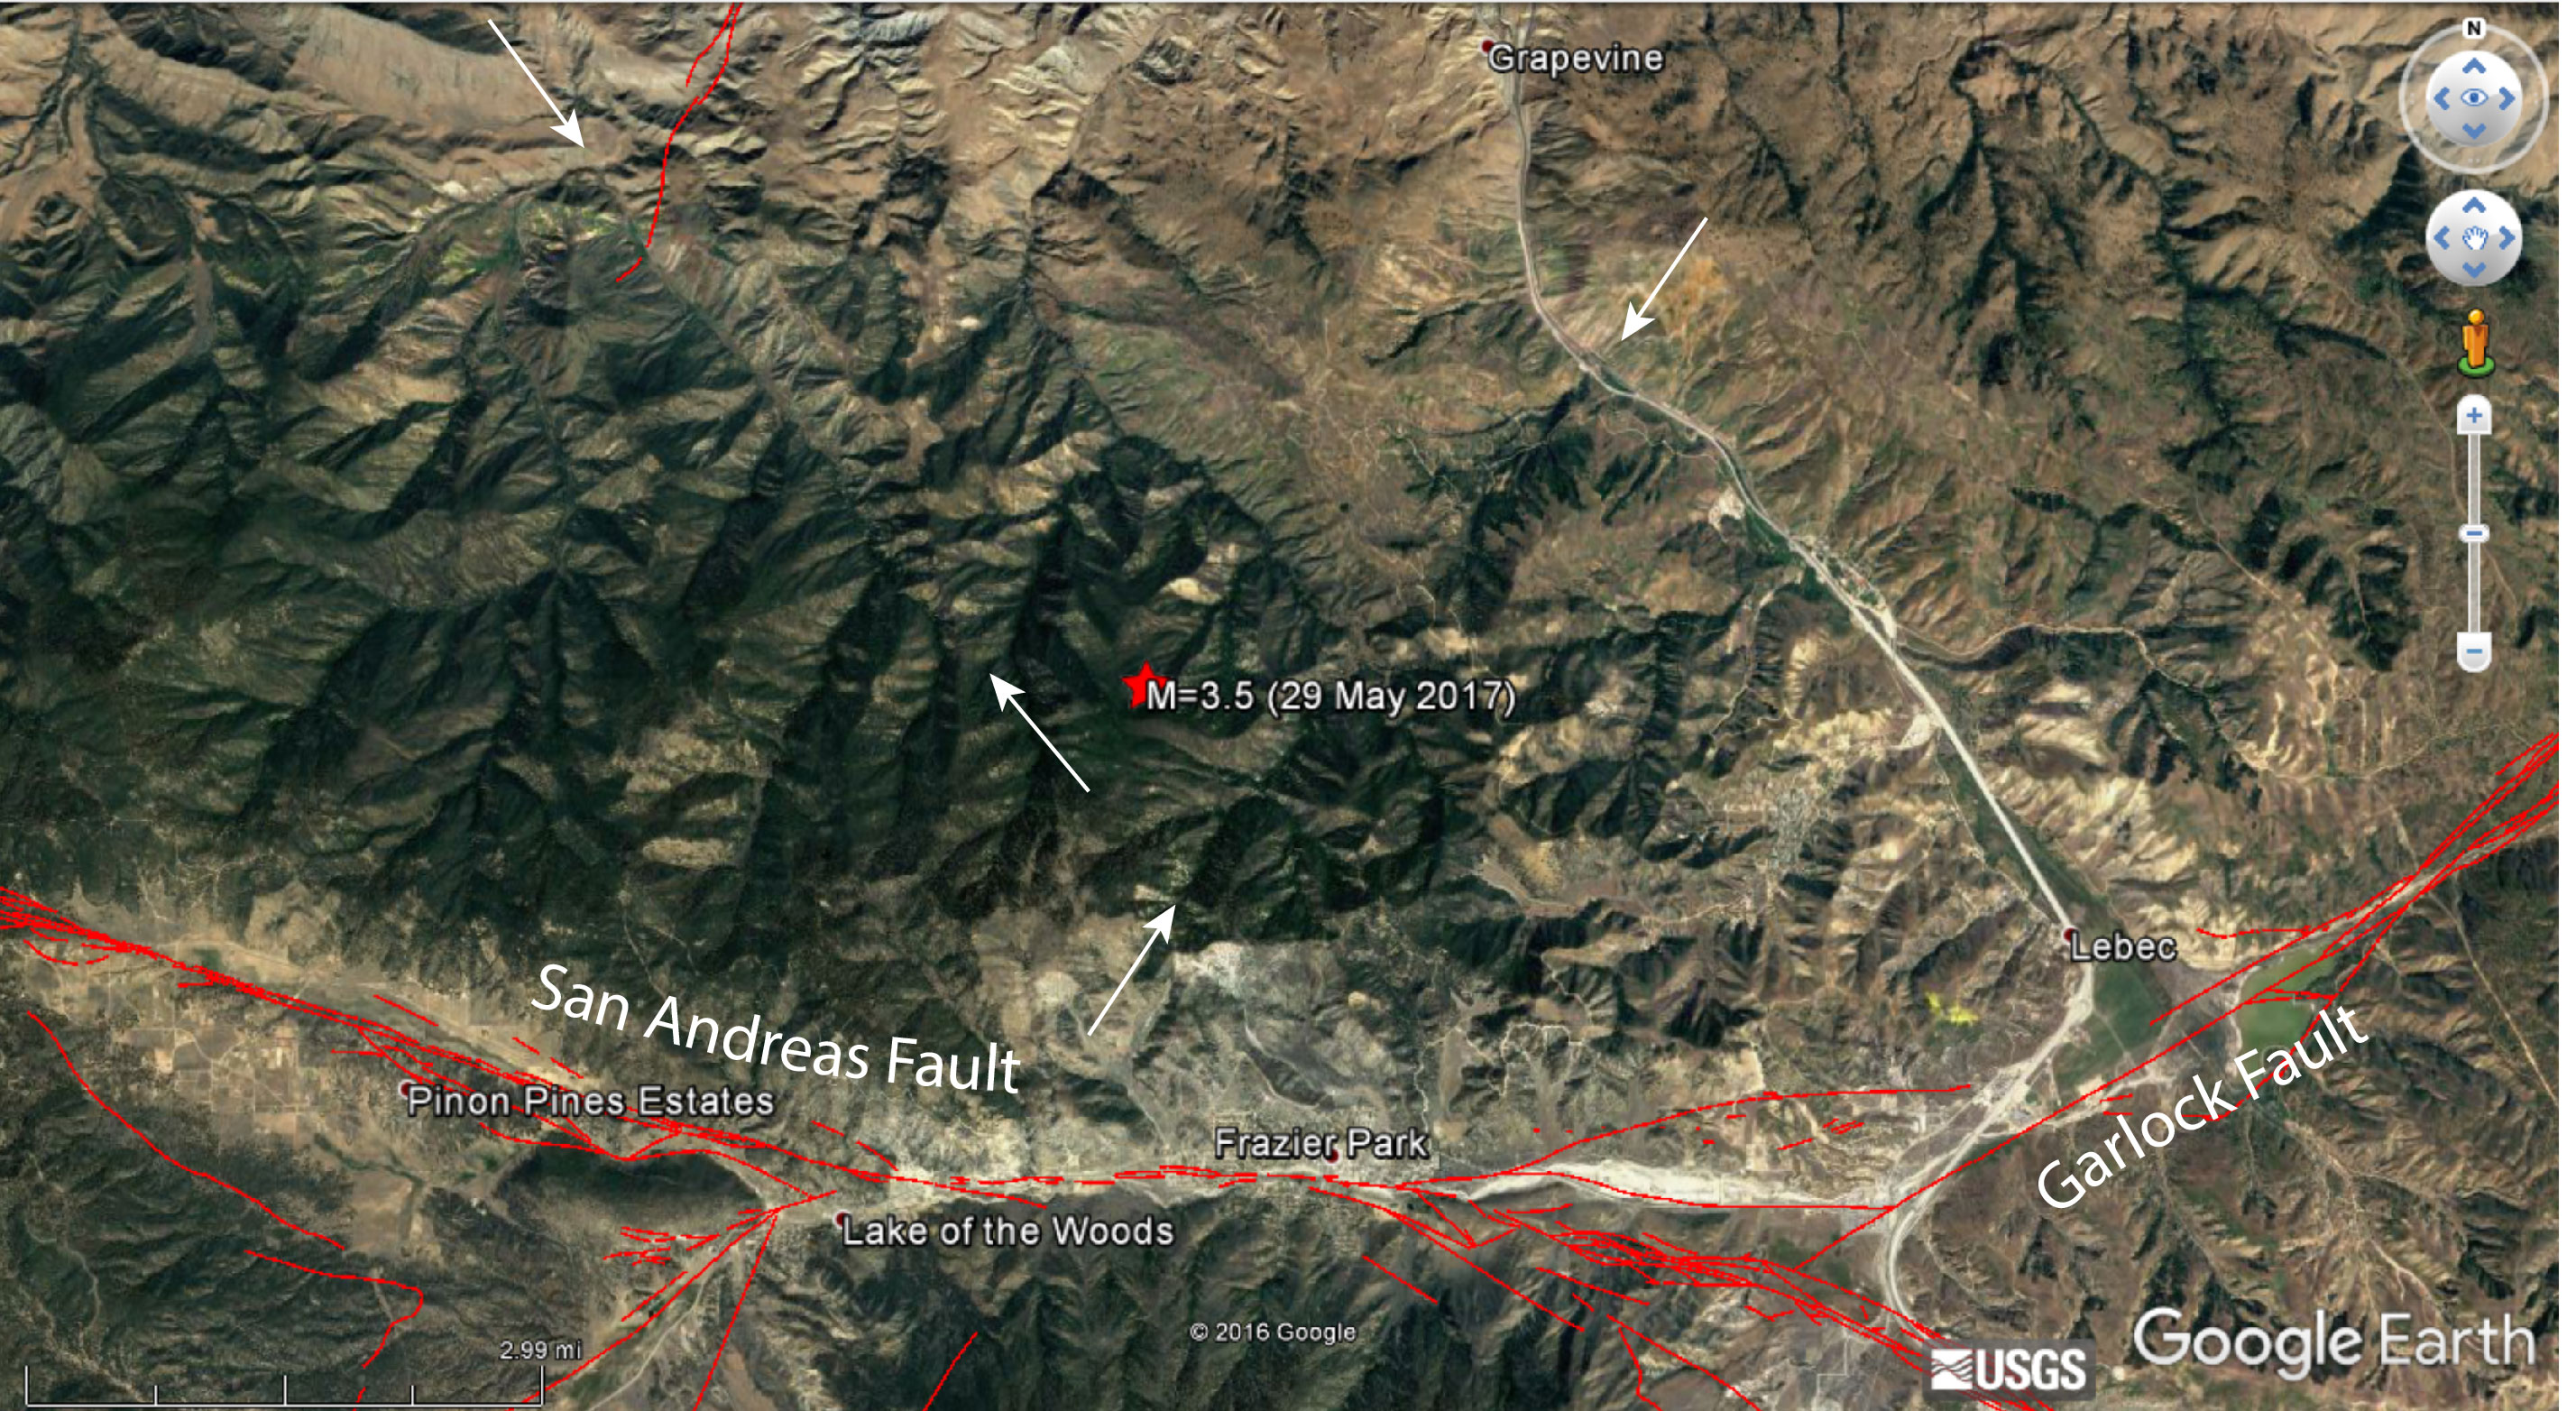 the san andreas fault Get information, facts, and pictures about san andreas fault at encyclopediacom make research projects and school reports about san andreas fault easy with credible.